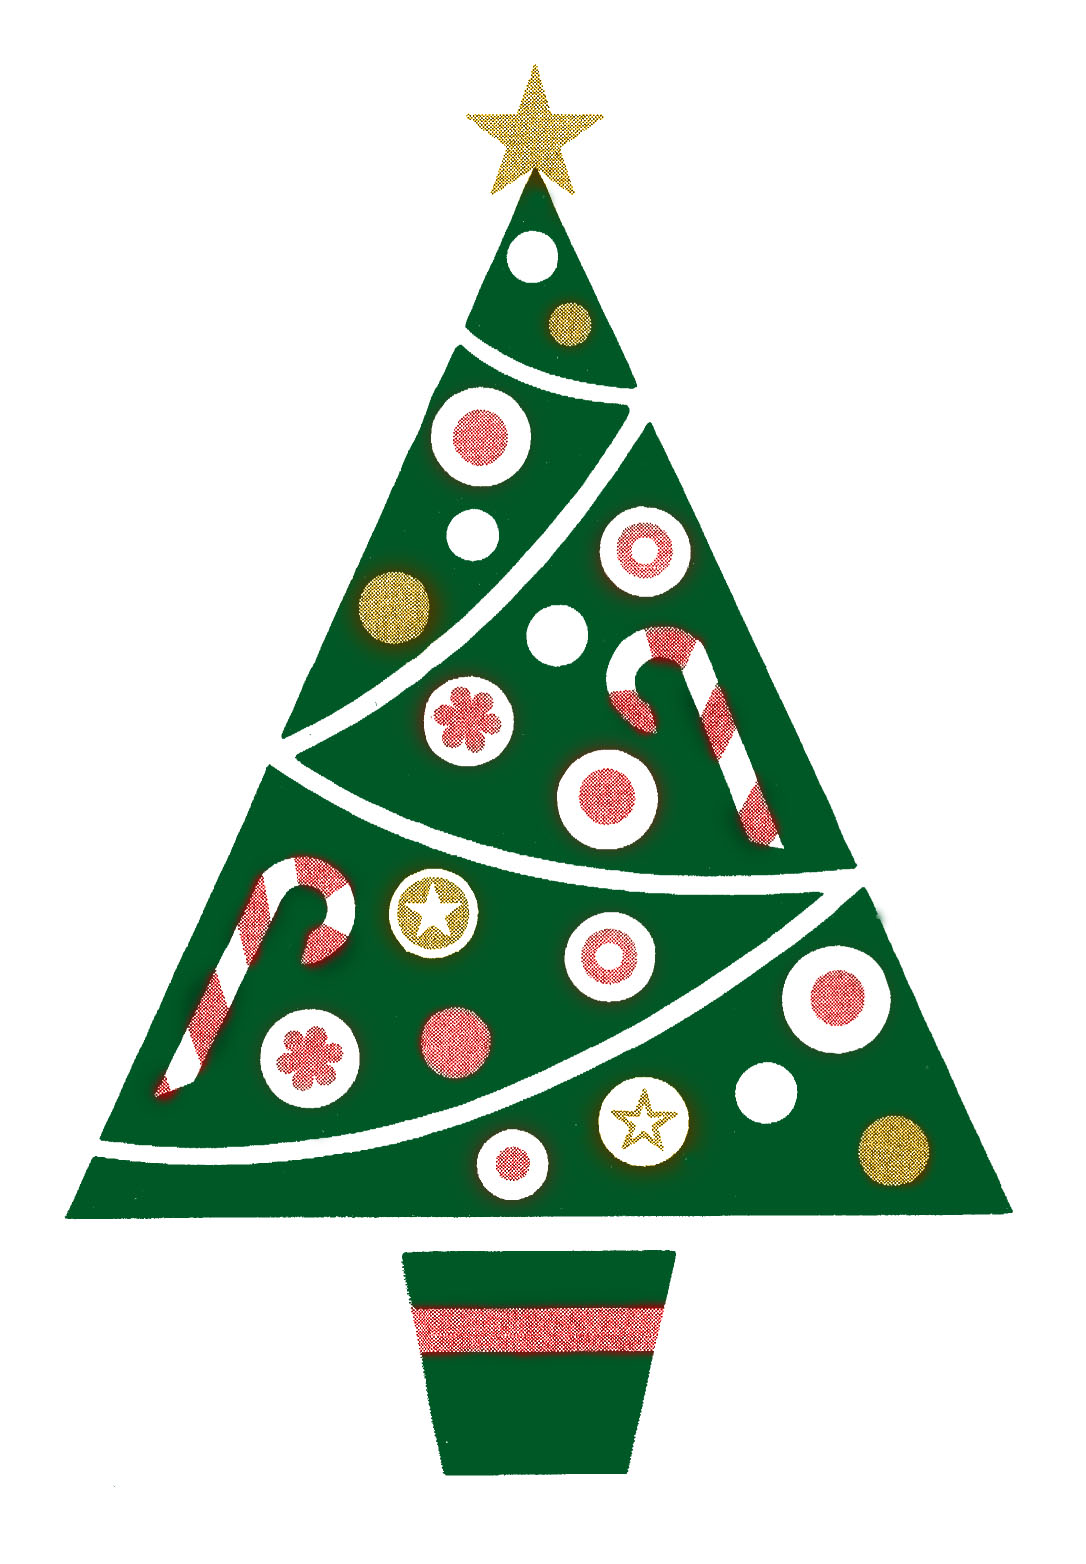 Retro Clip Art - Fun and Funky Christmas Tree - The Graphics Fairy